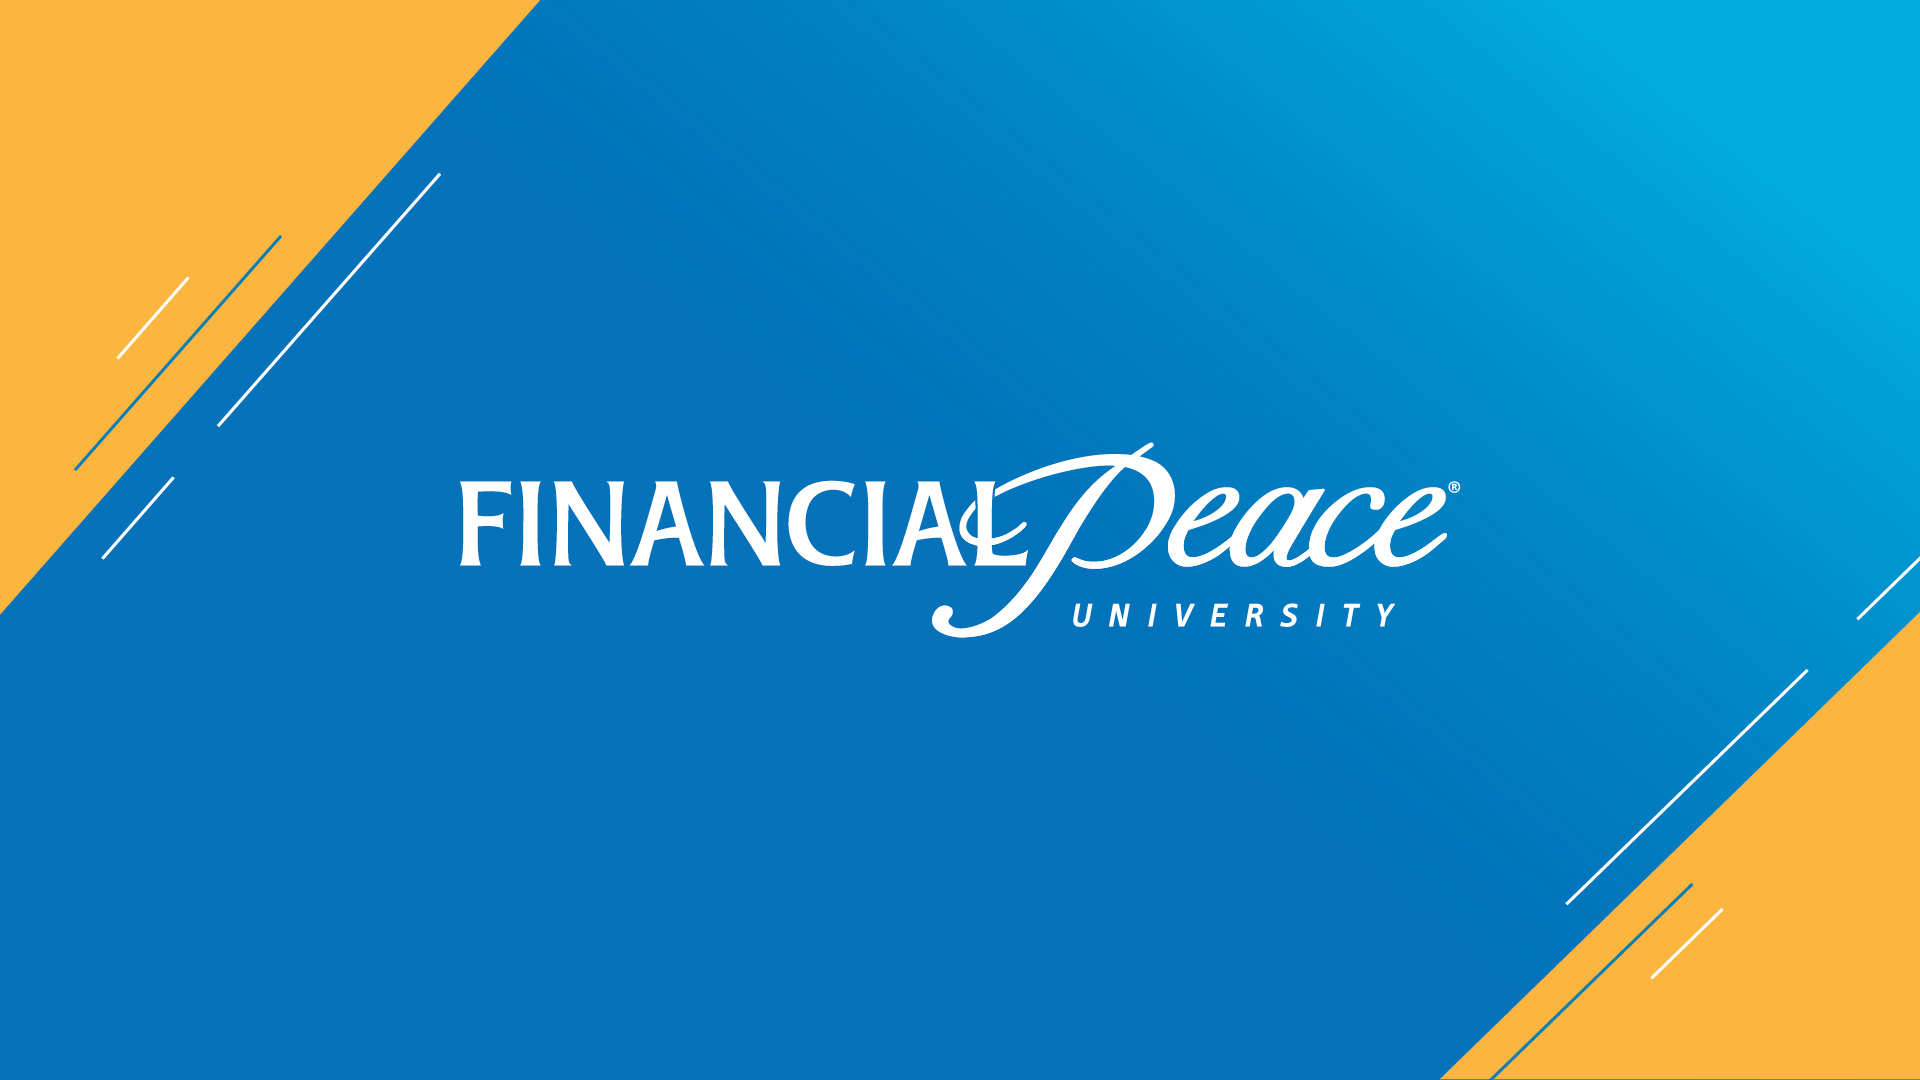 Financial Peace University - Sundays 10am